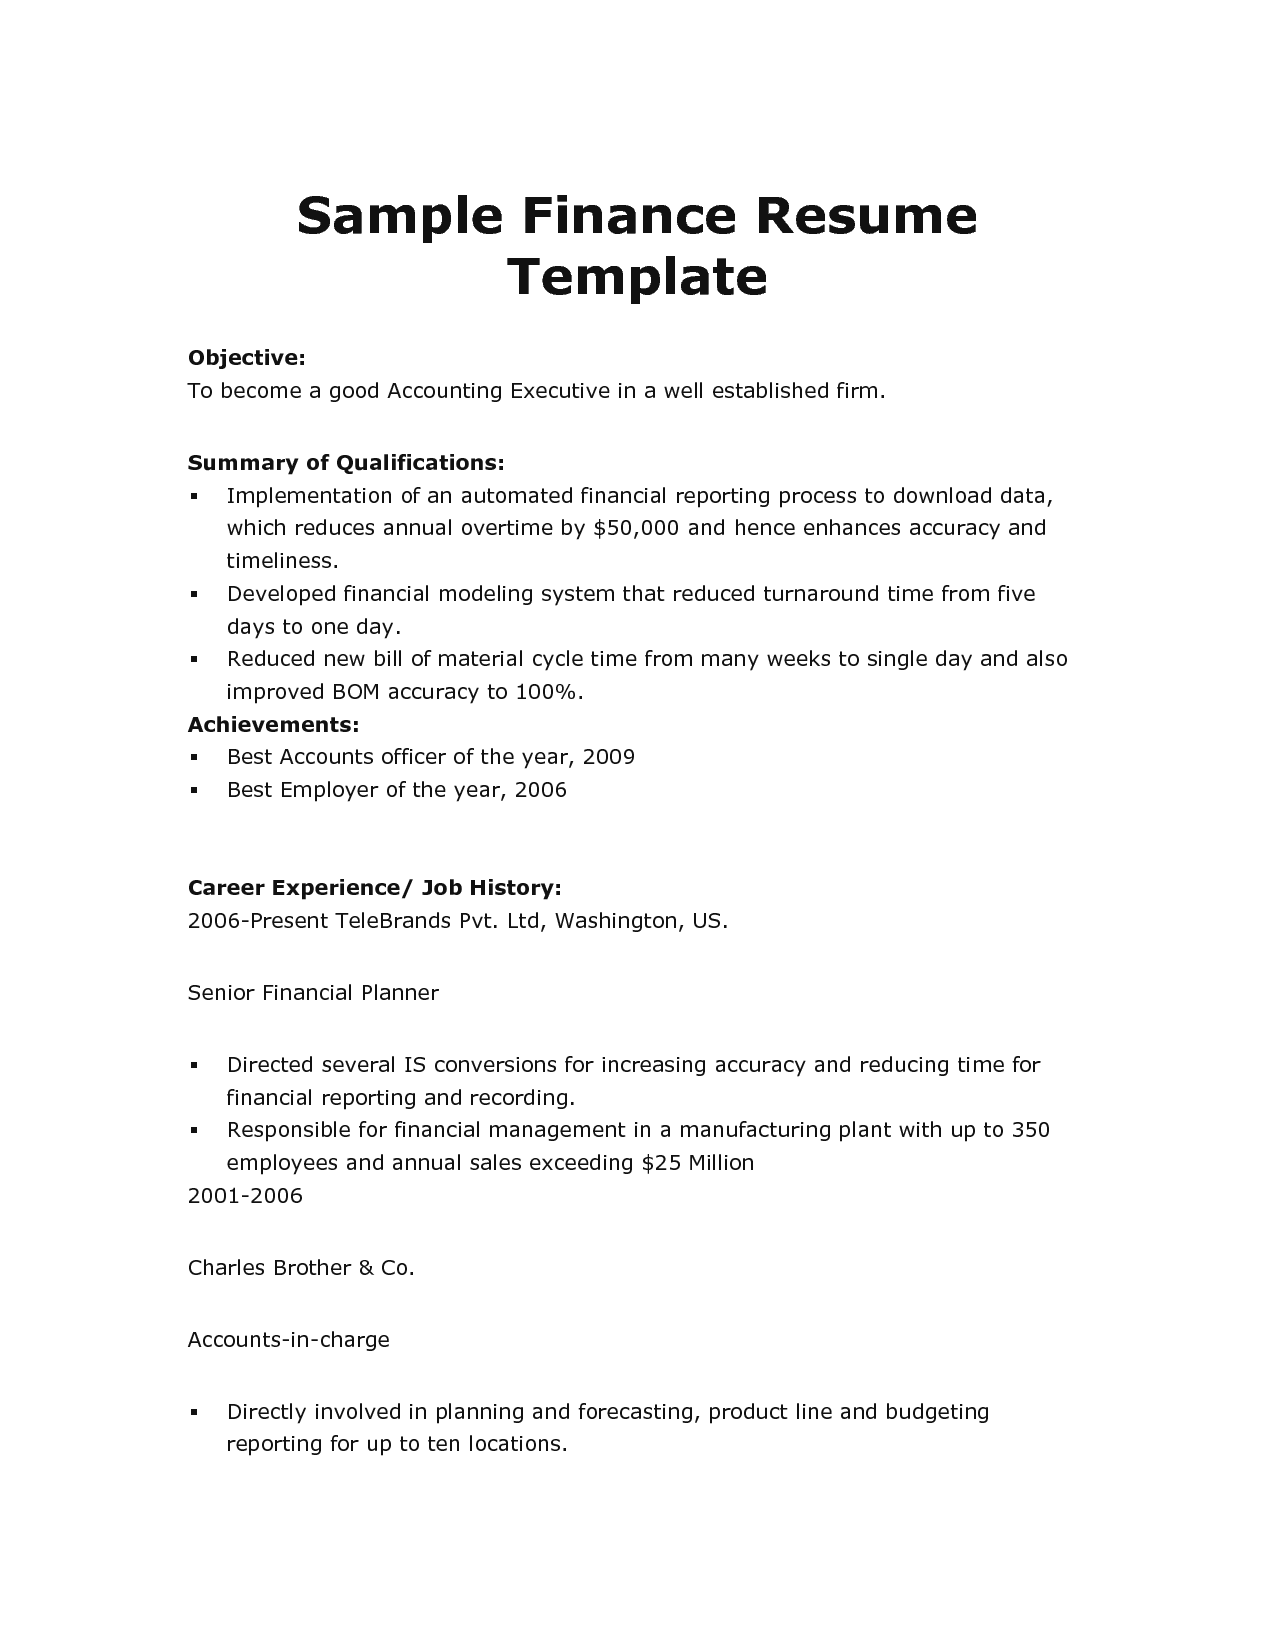 Resume Samples For Professionals Download High Quality Professional Resume Template Samples